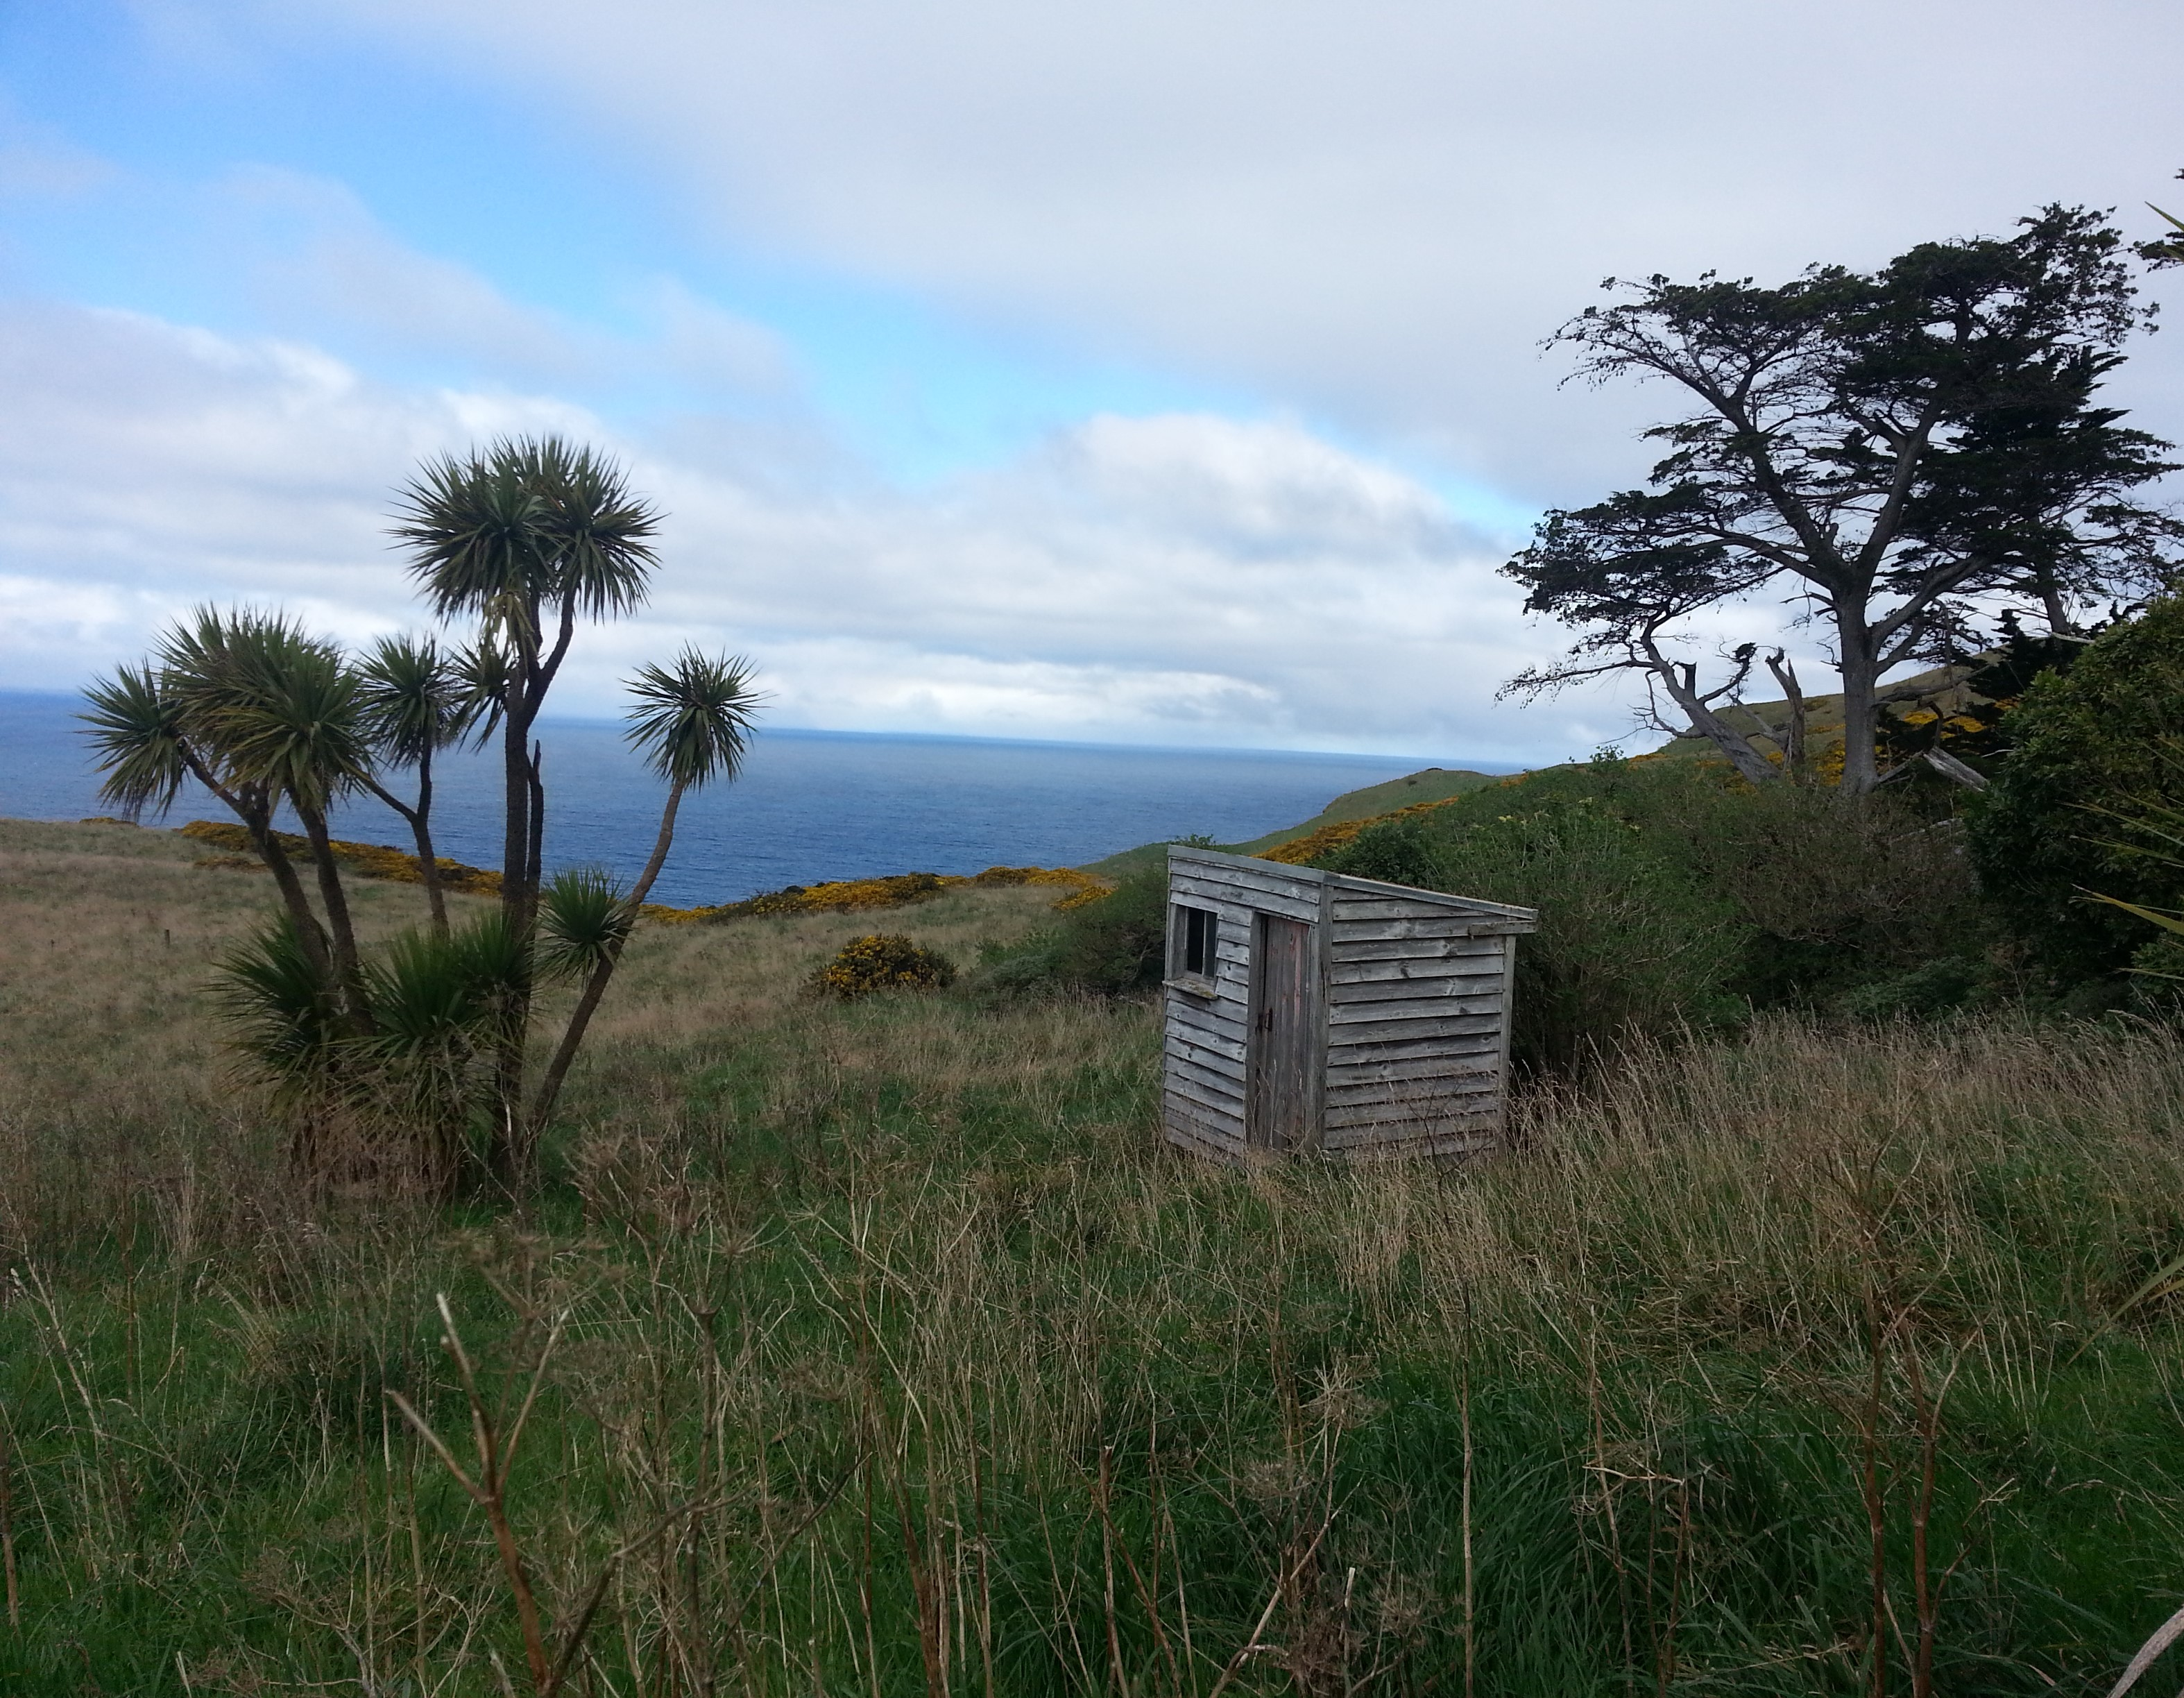 Buskin Track, Inglis's Hut, and Shand's Estate